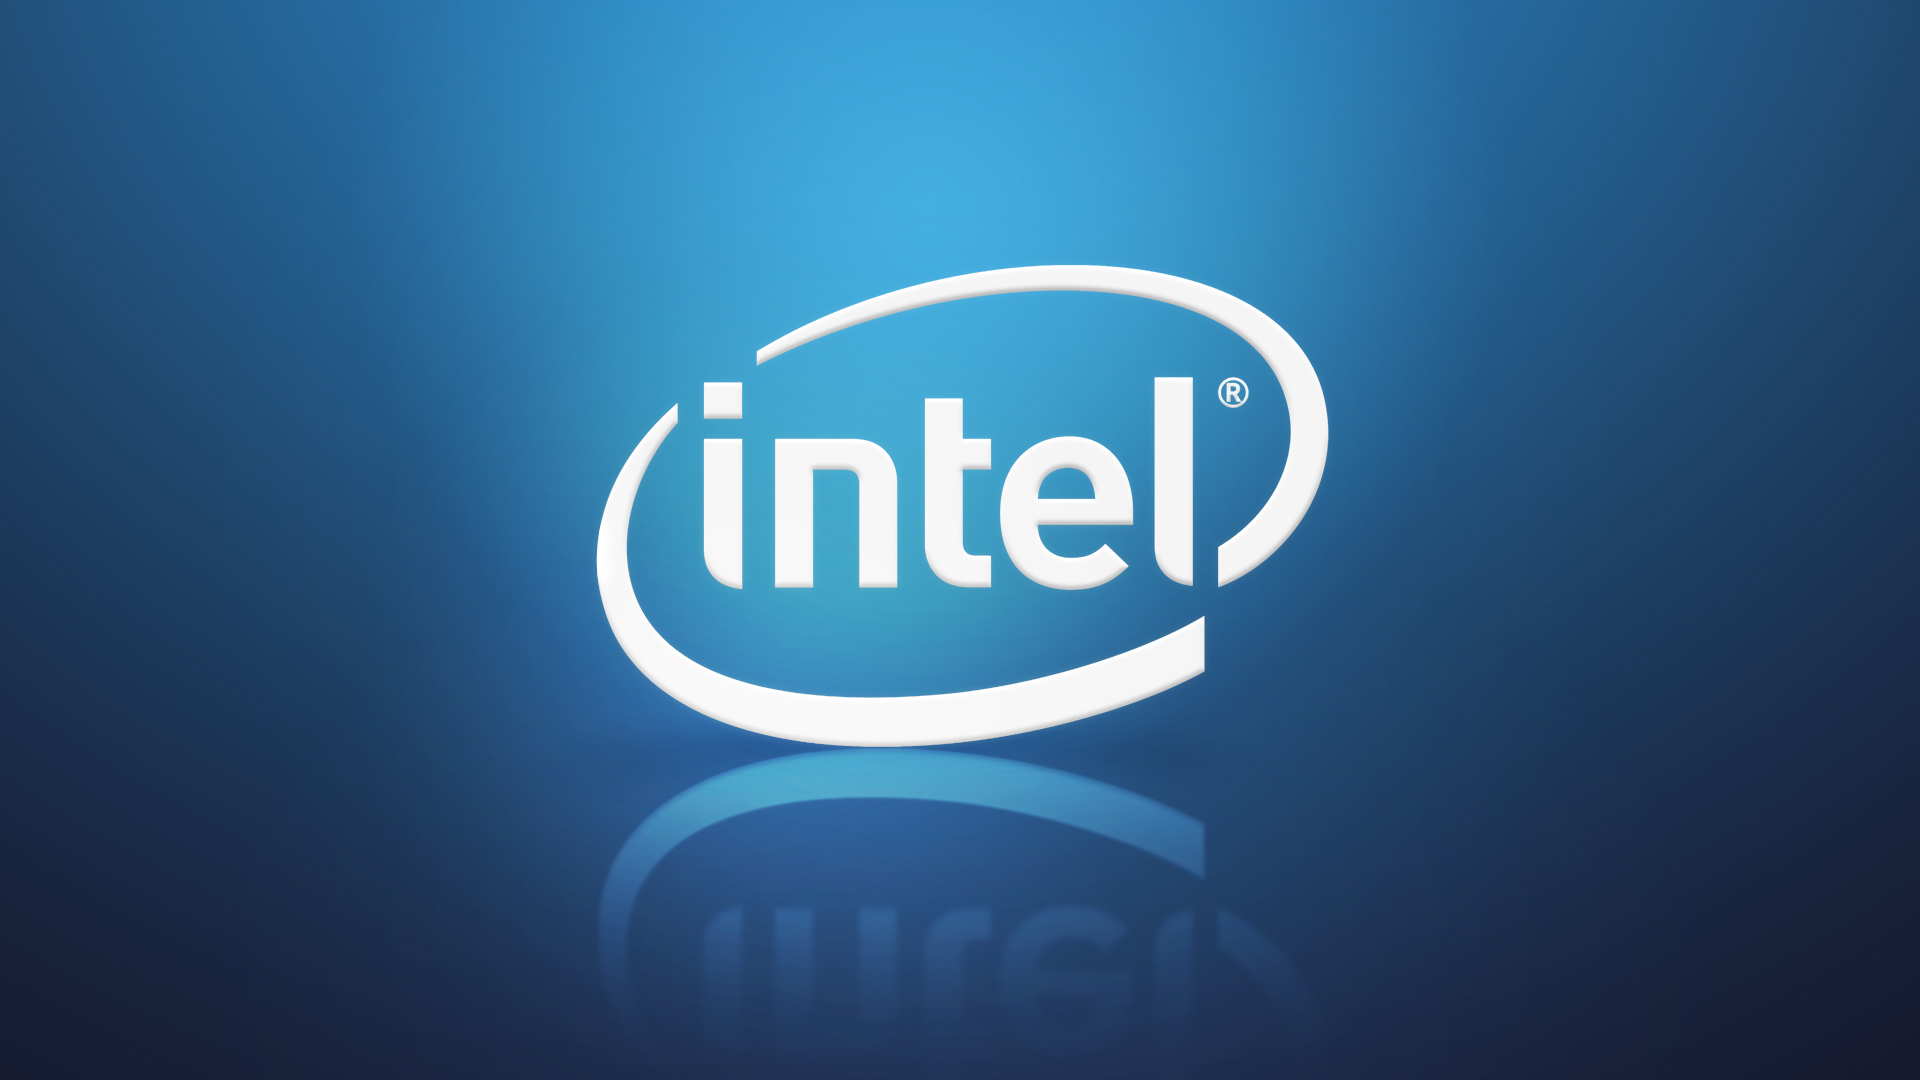 Intel Net Worth